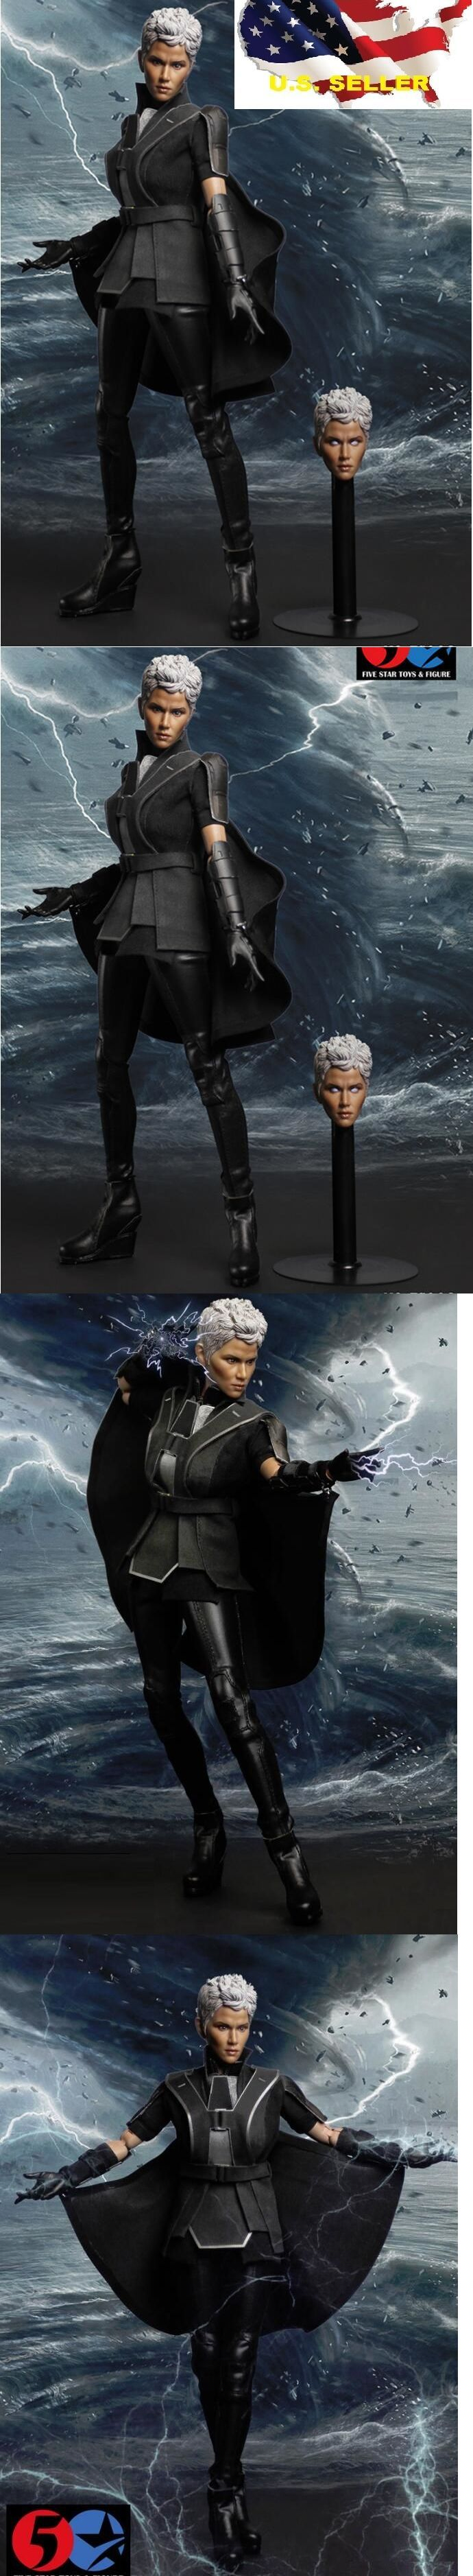 Other Action Figures 348: 1 6 Storm Superhero X-Men Full Set For Hot Toys Phicen Kumik Us Seller -> BUY IT NOW ONLY: $149.99 on eBay!